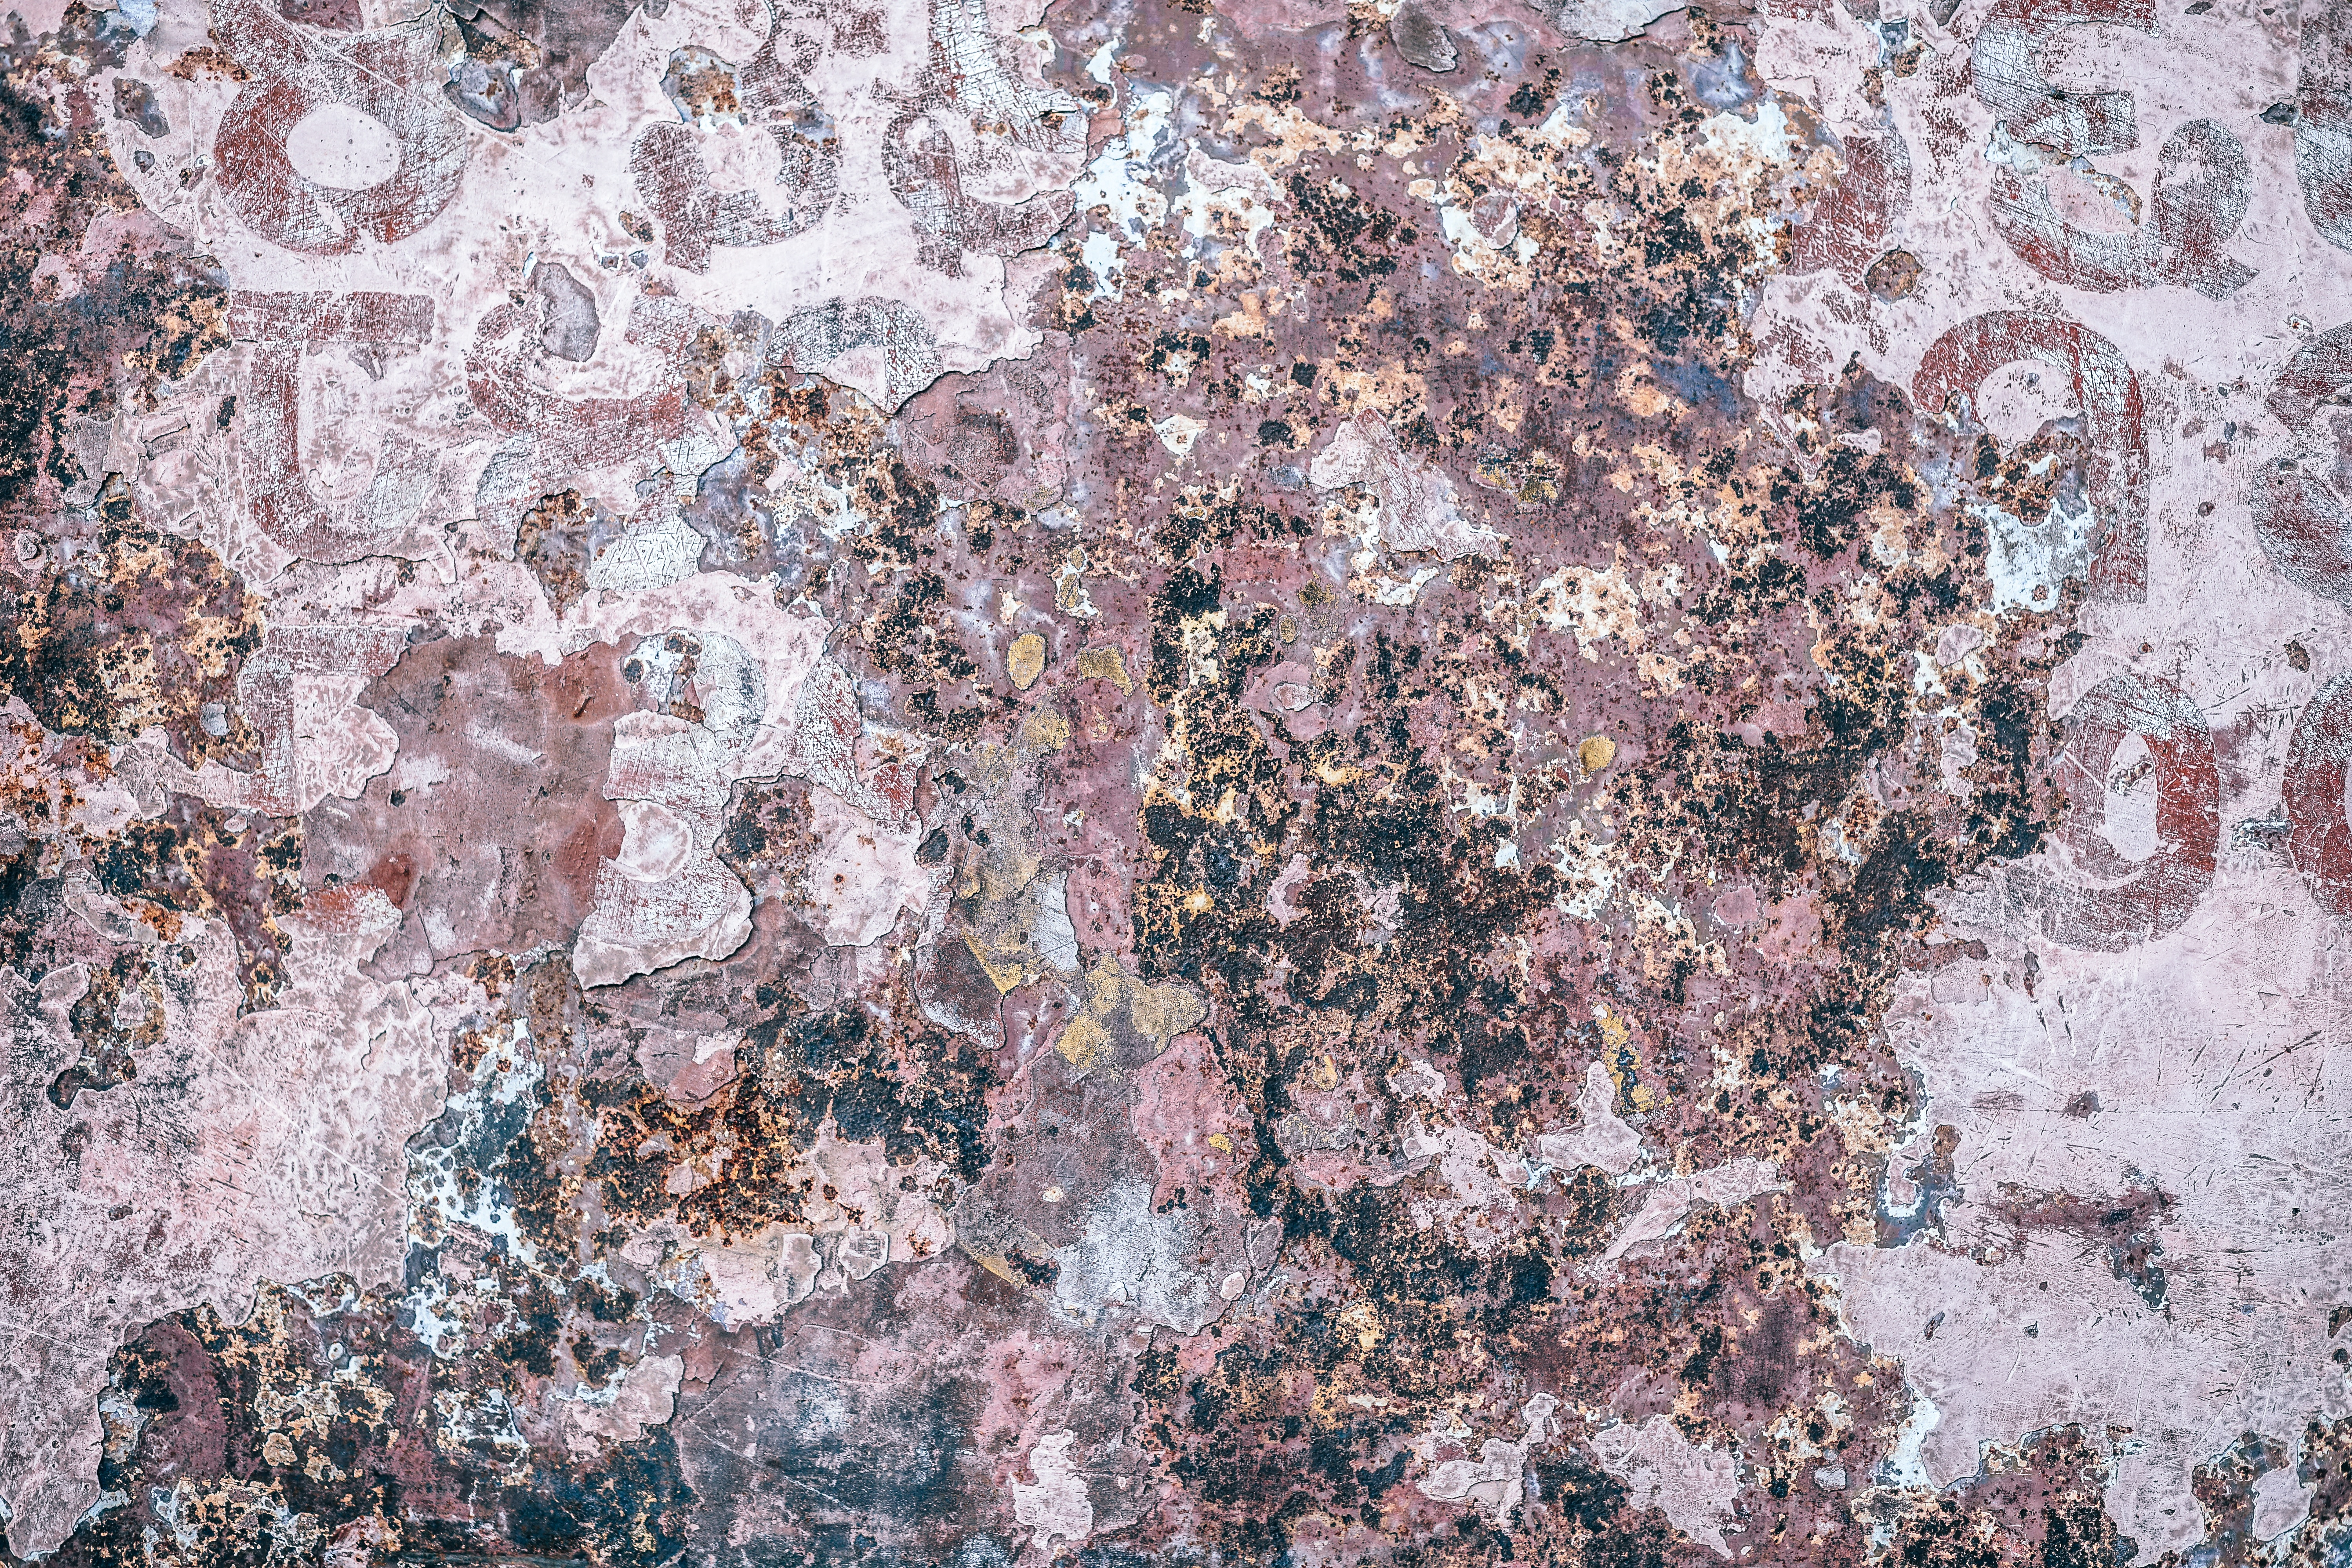 Pink, grungy texture that\'s been touched by time.